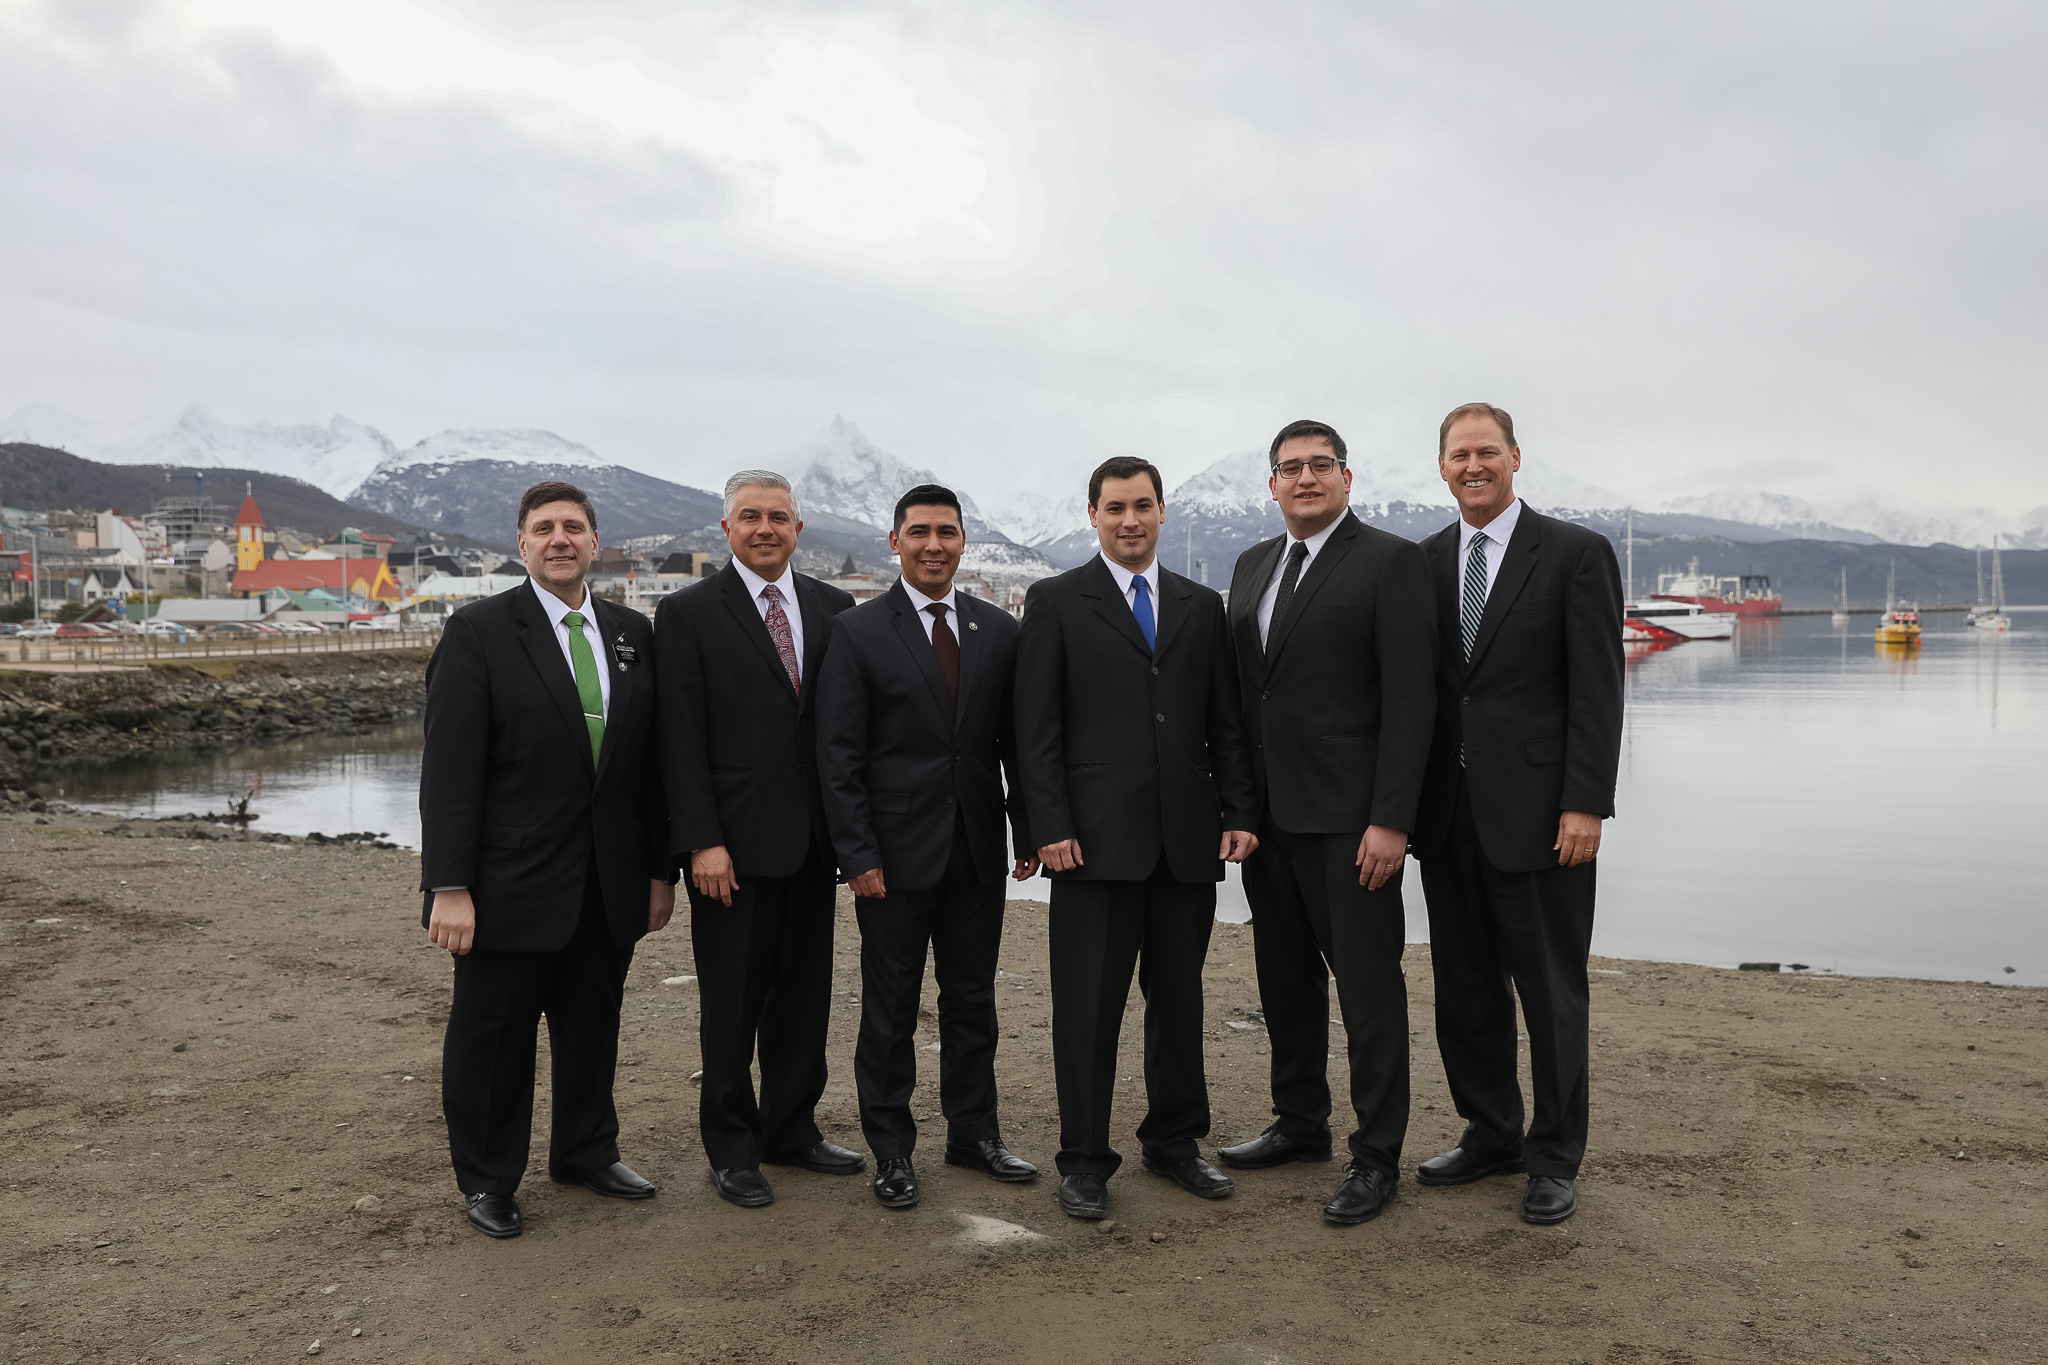 Elder Mark A. Bragg, right, stands with the new Tierra del Fuego Argentina stake presidency and other Church leader in Ushuaia, Argentina on June 2, 2019.